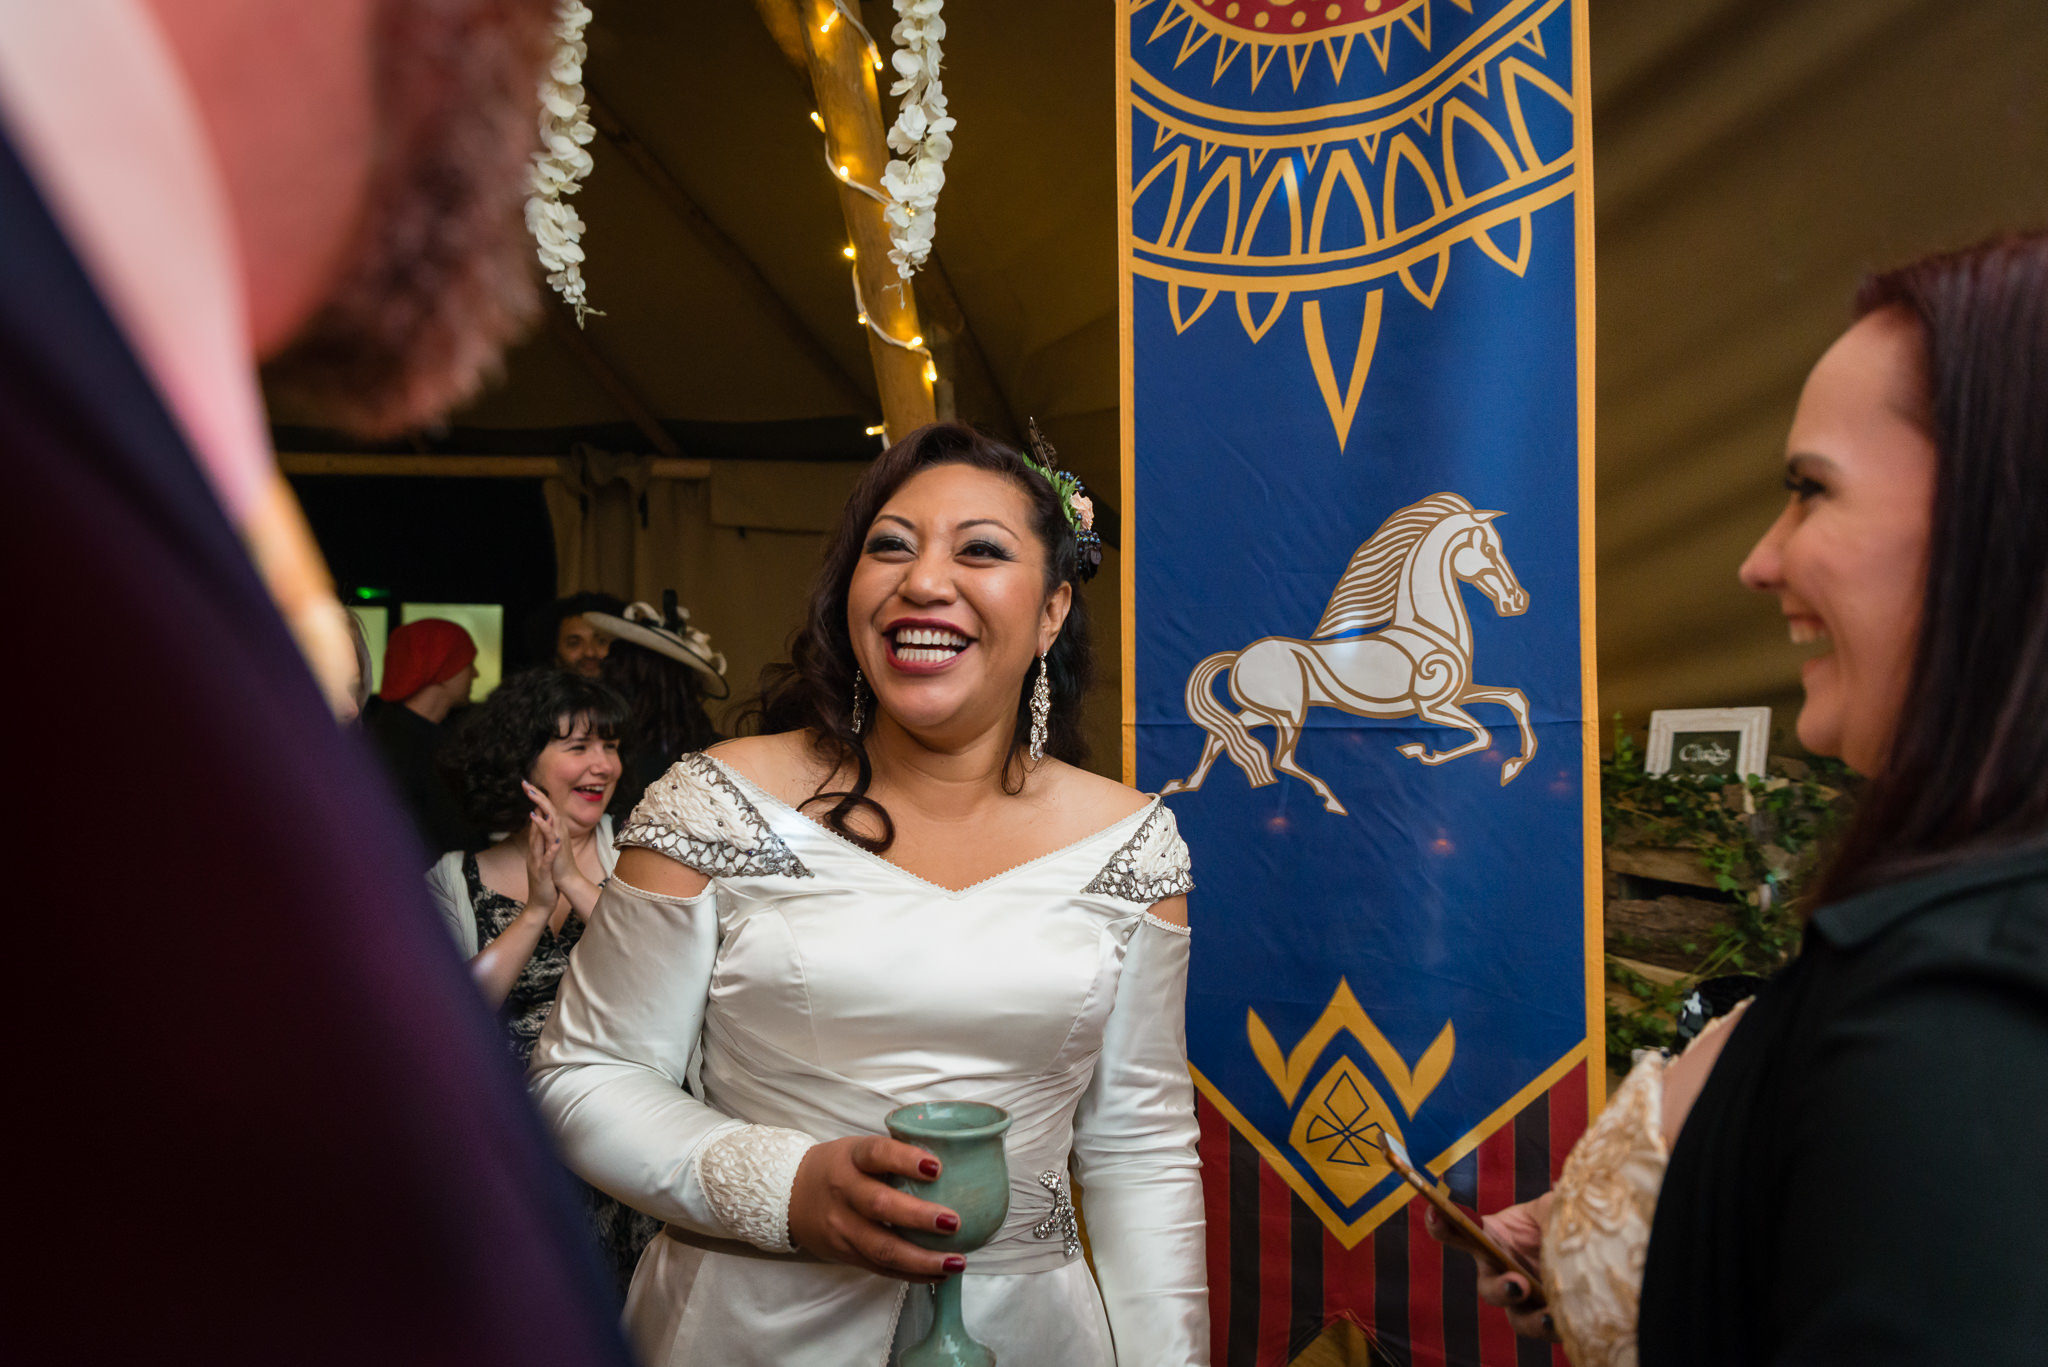 The Bride during her tipi wedding reception